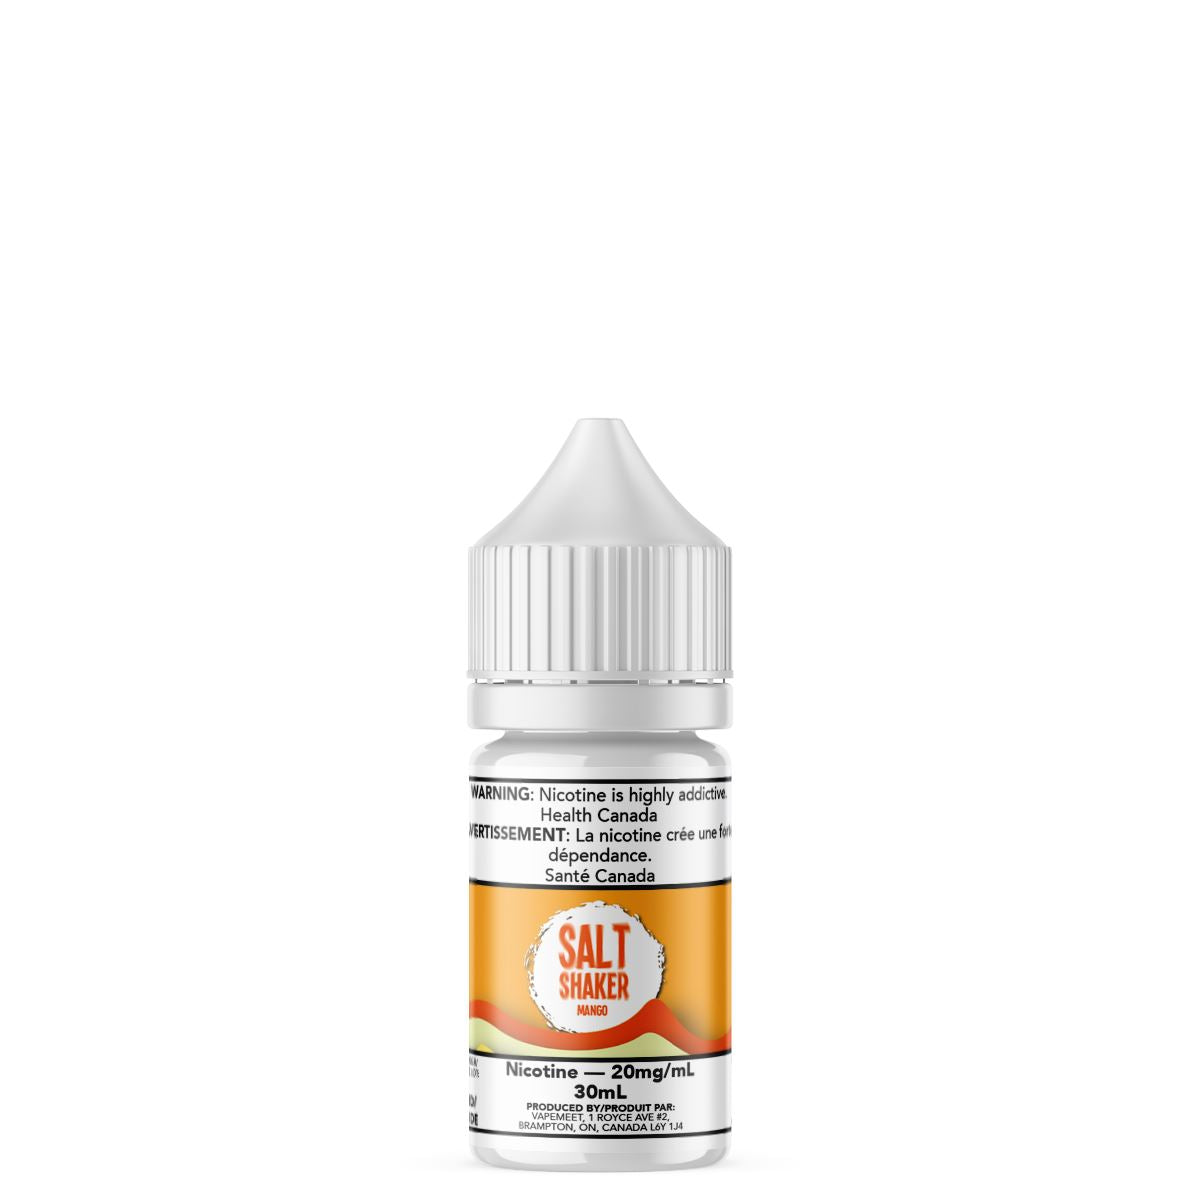 Salt Shaker - Mango E-Liquid Salt Shaker 30mL 20 mg/mL